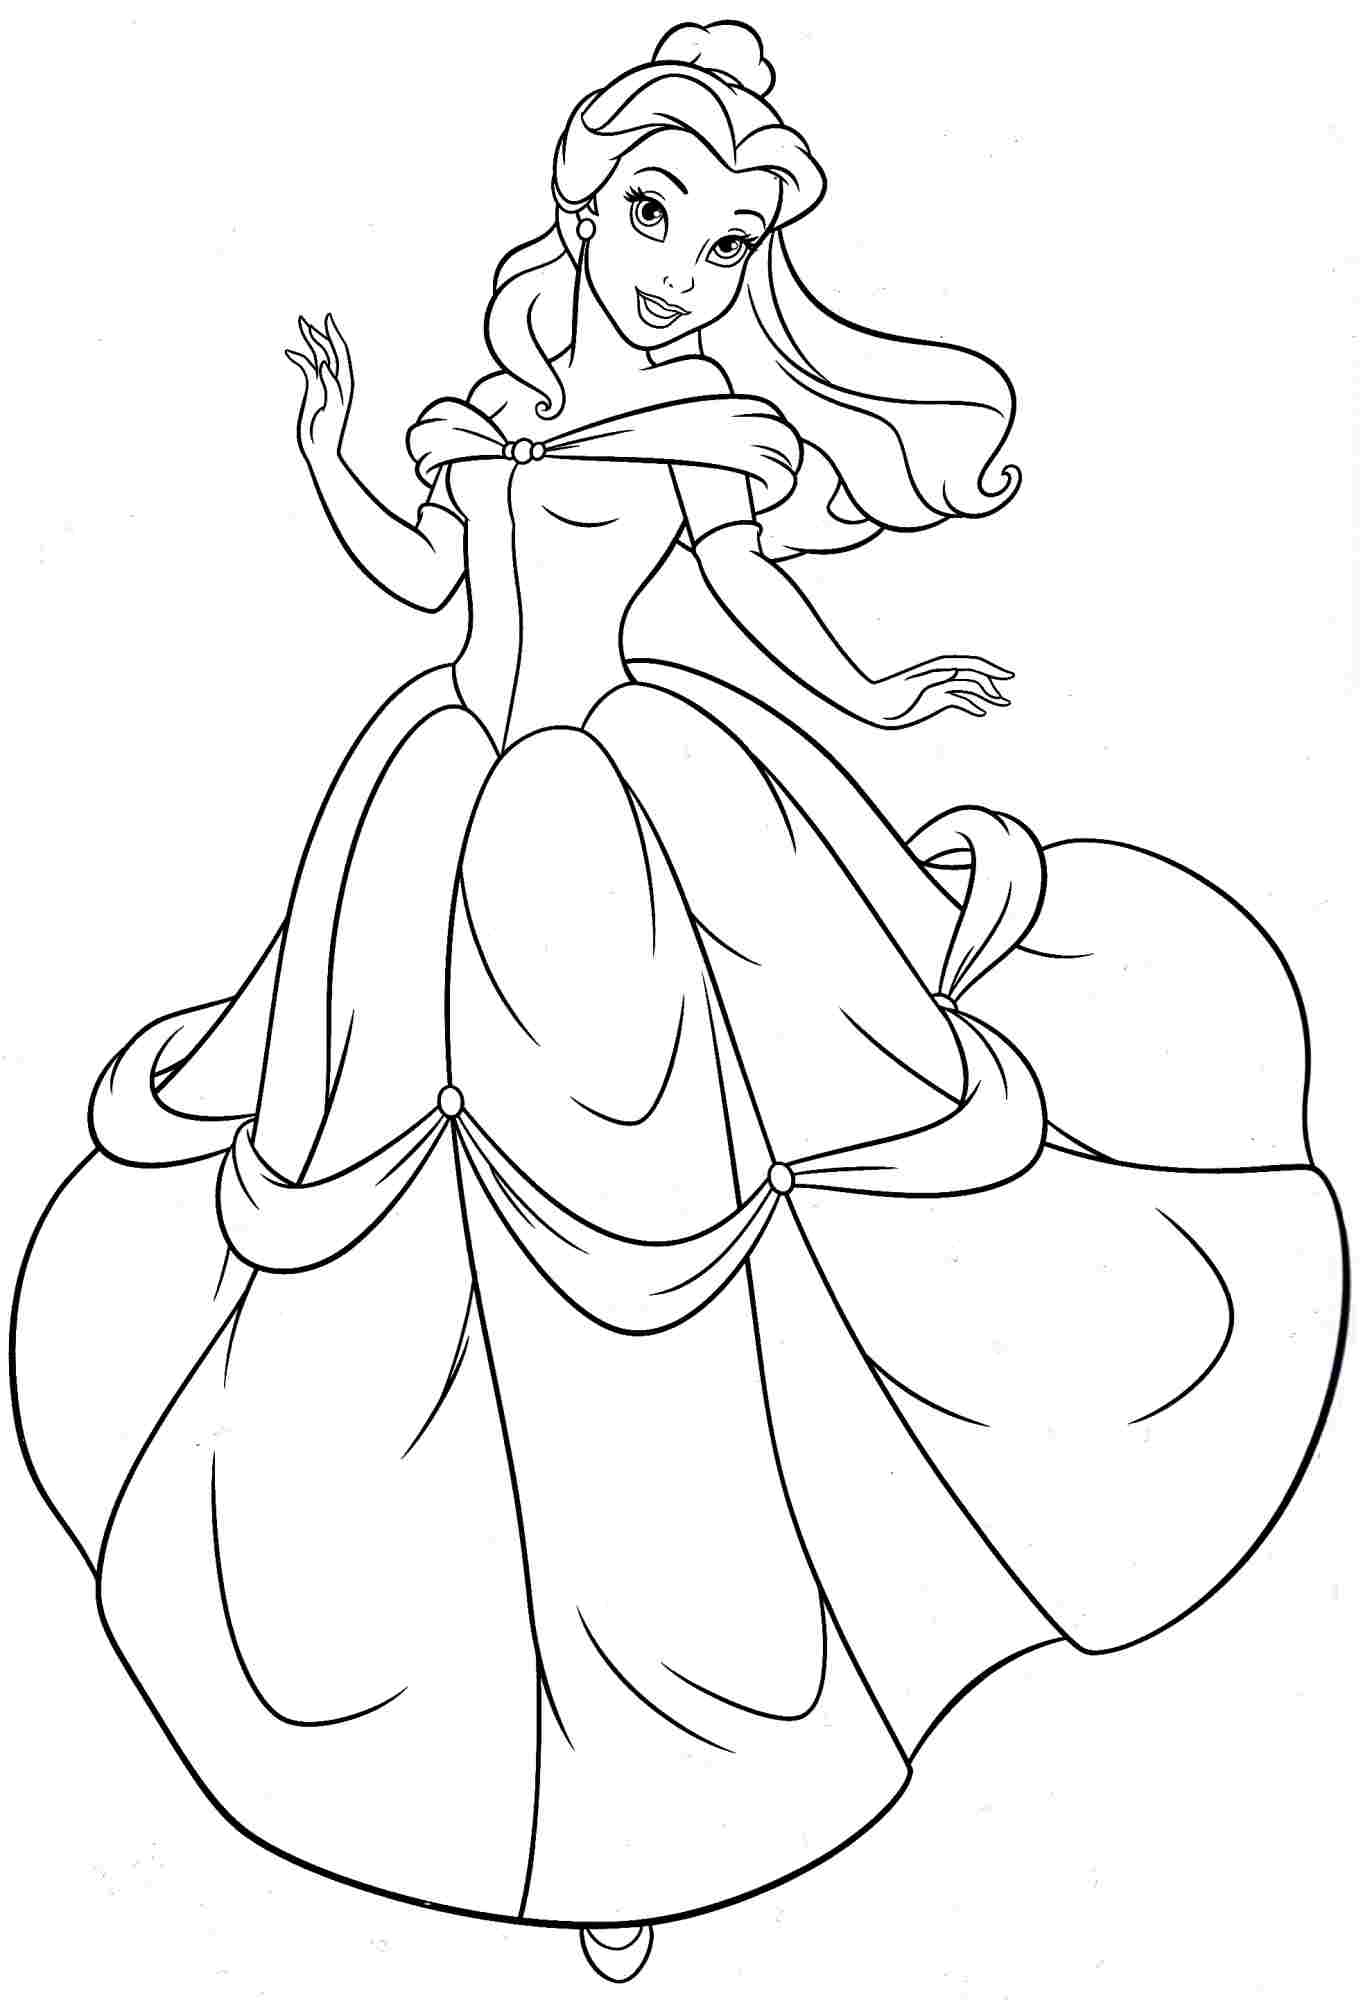 coloring princesses princess coloring pages best coloring pages for kids coloring princesses